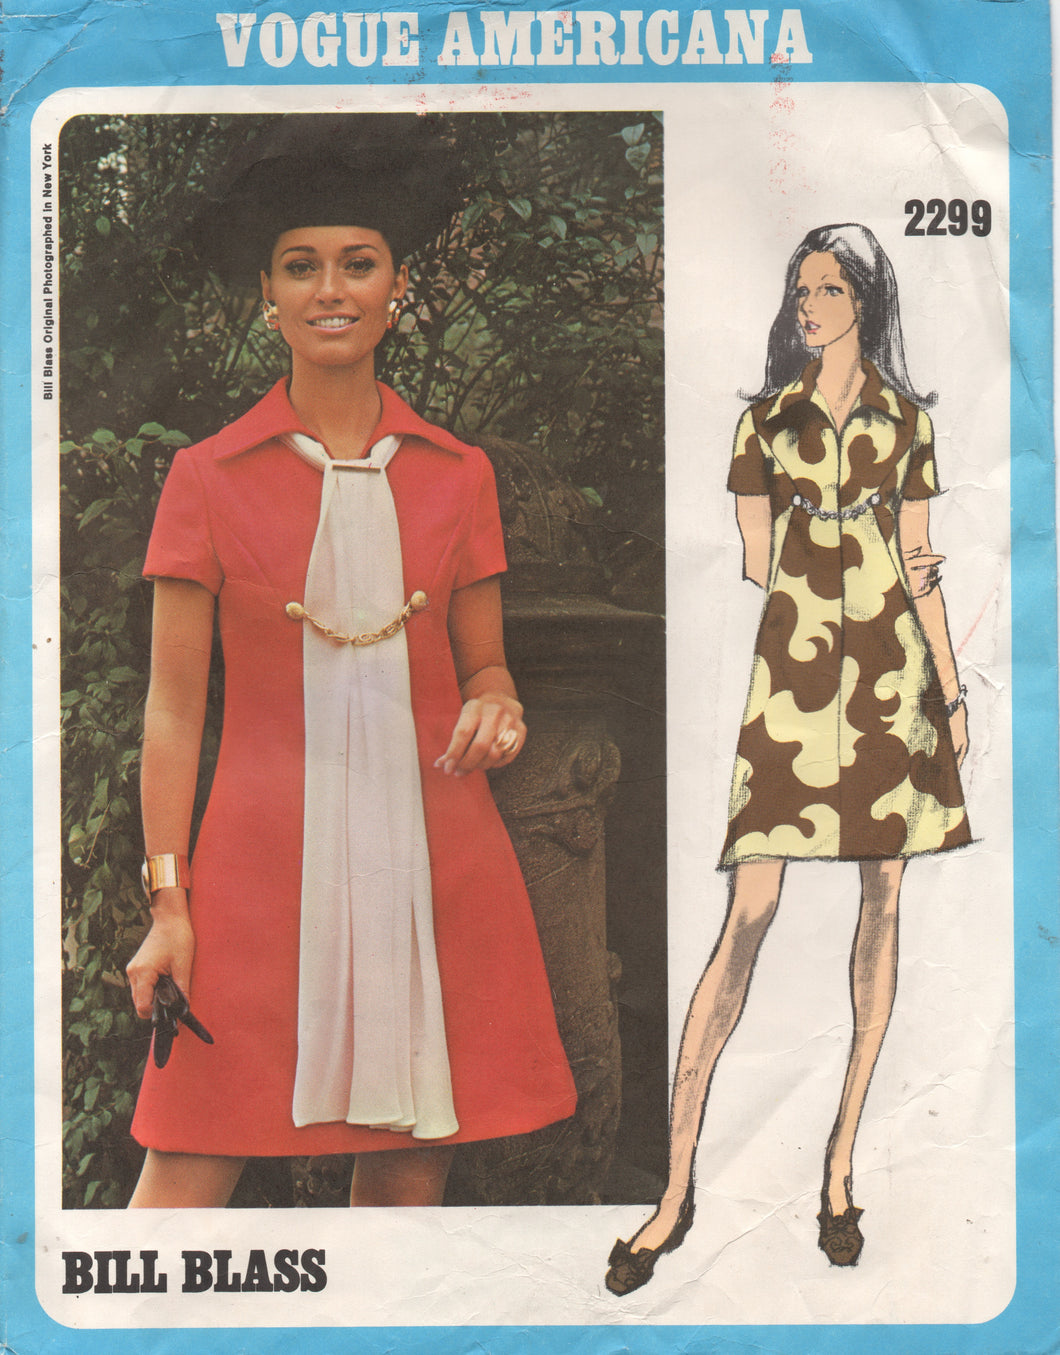 1970's Vogue Americana One Piece Dress with Large Collar- Bill Blass - Bust 32.5